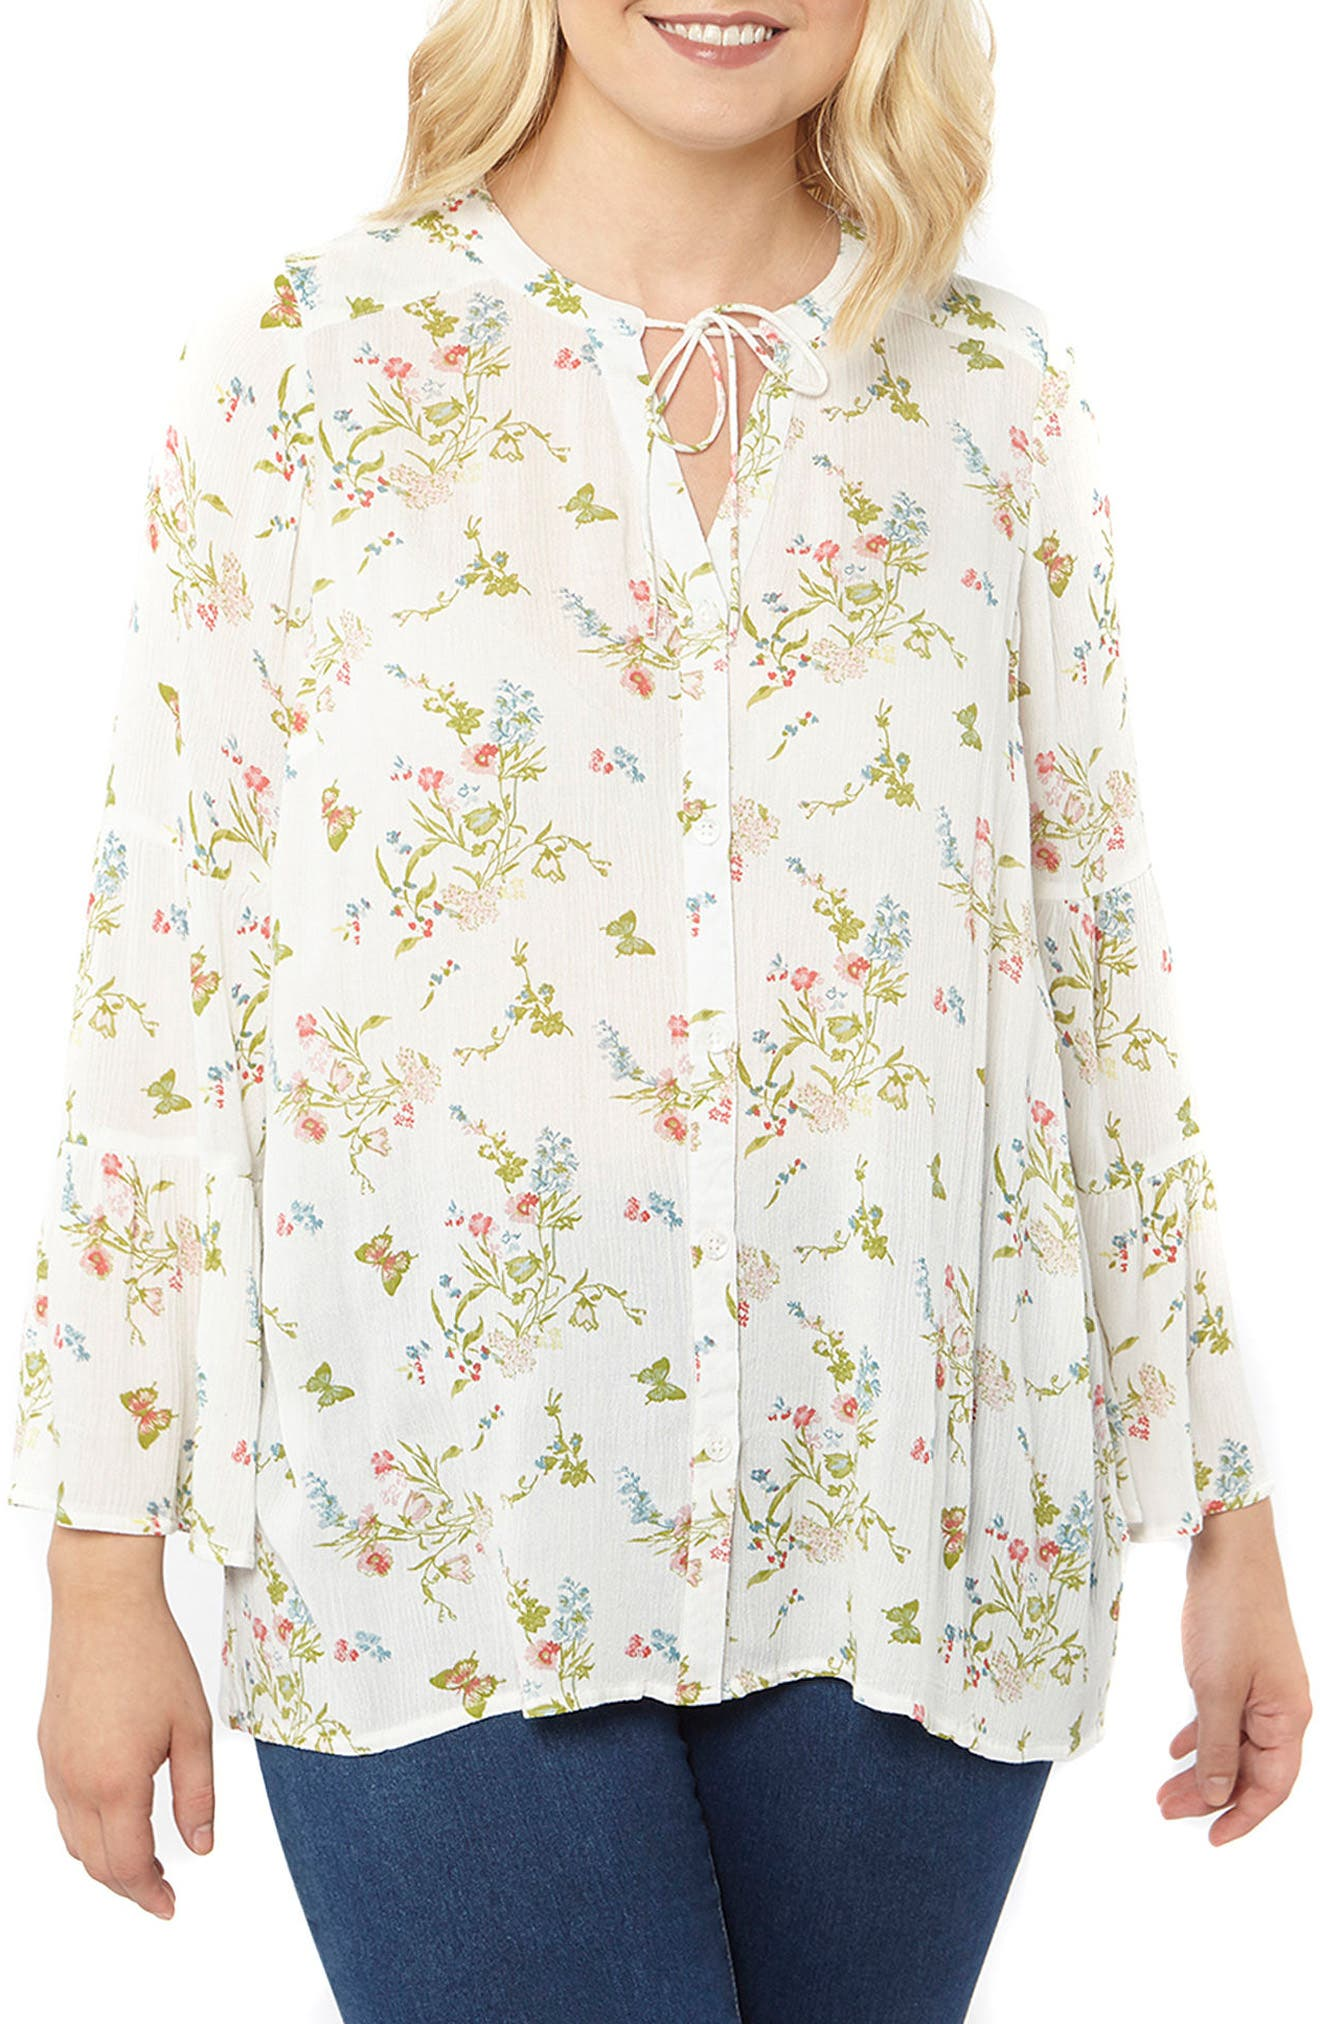 Bell Sleeve Floral Blouse,                             Main thumbnail 1, color,                             903